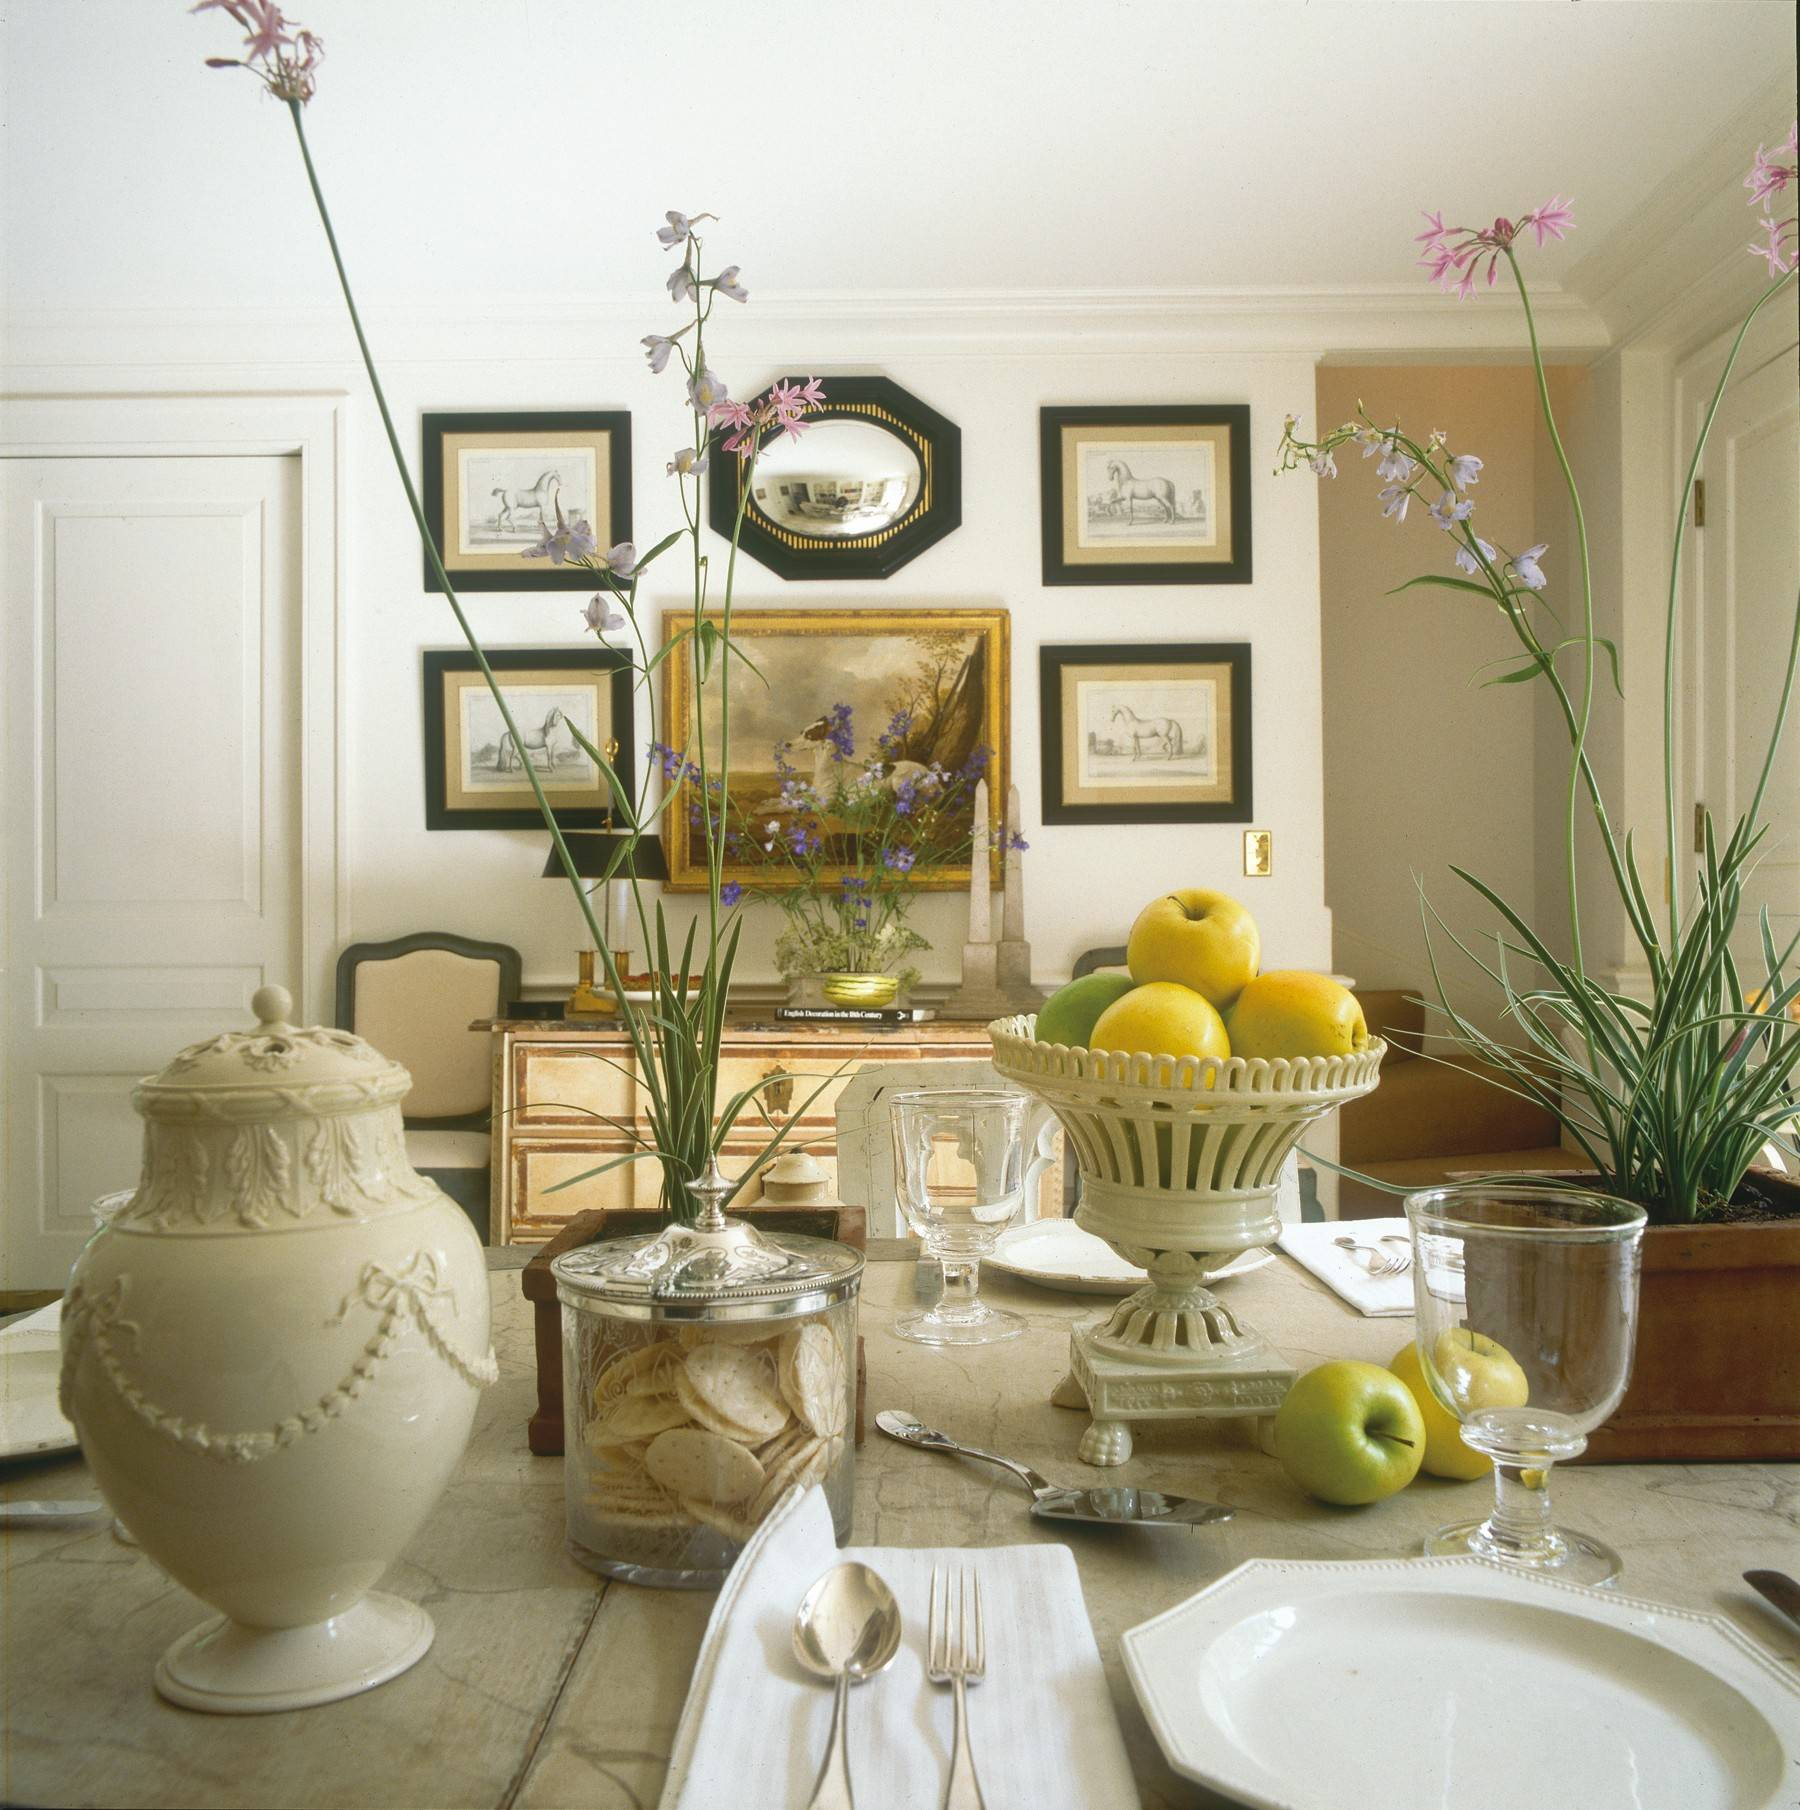 A carefully composed wall arrangement is a key decorative element in a relaxed, inviting dining room.